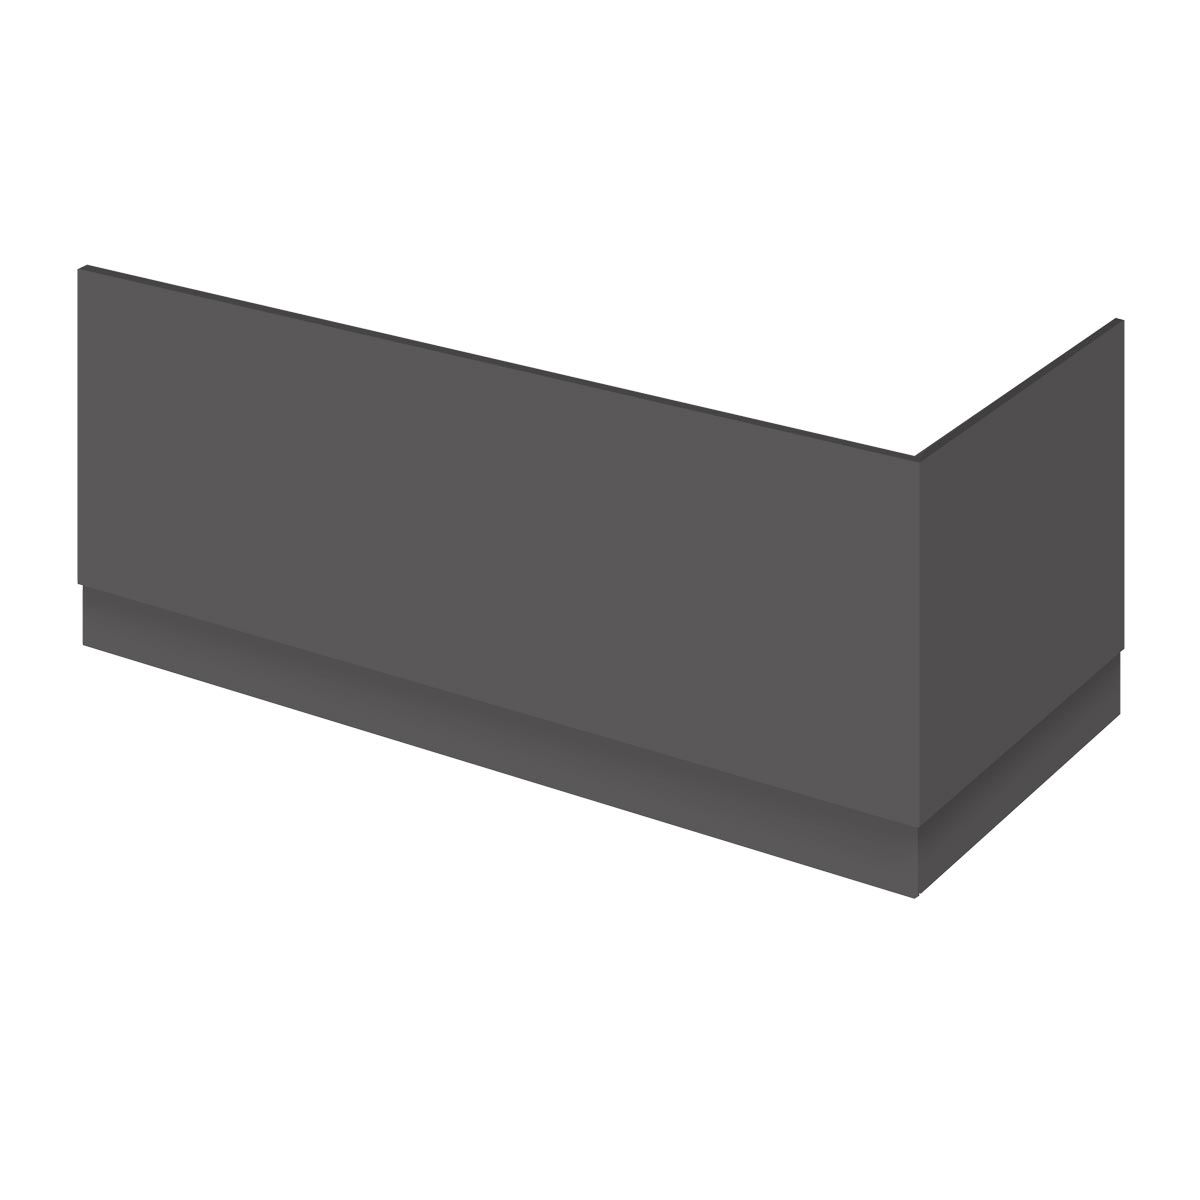 Nuie Athena Gloss Grey Front Bath Panel 1800mm